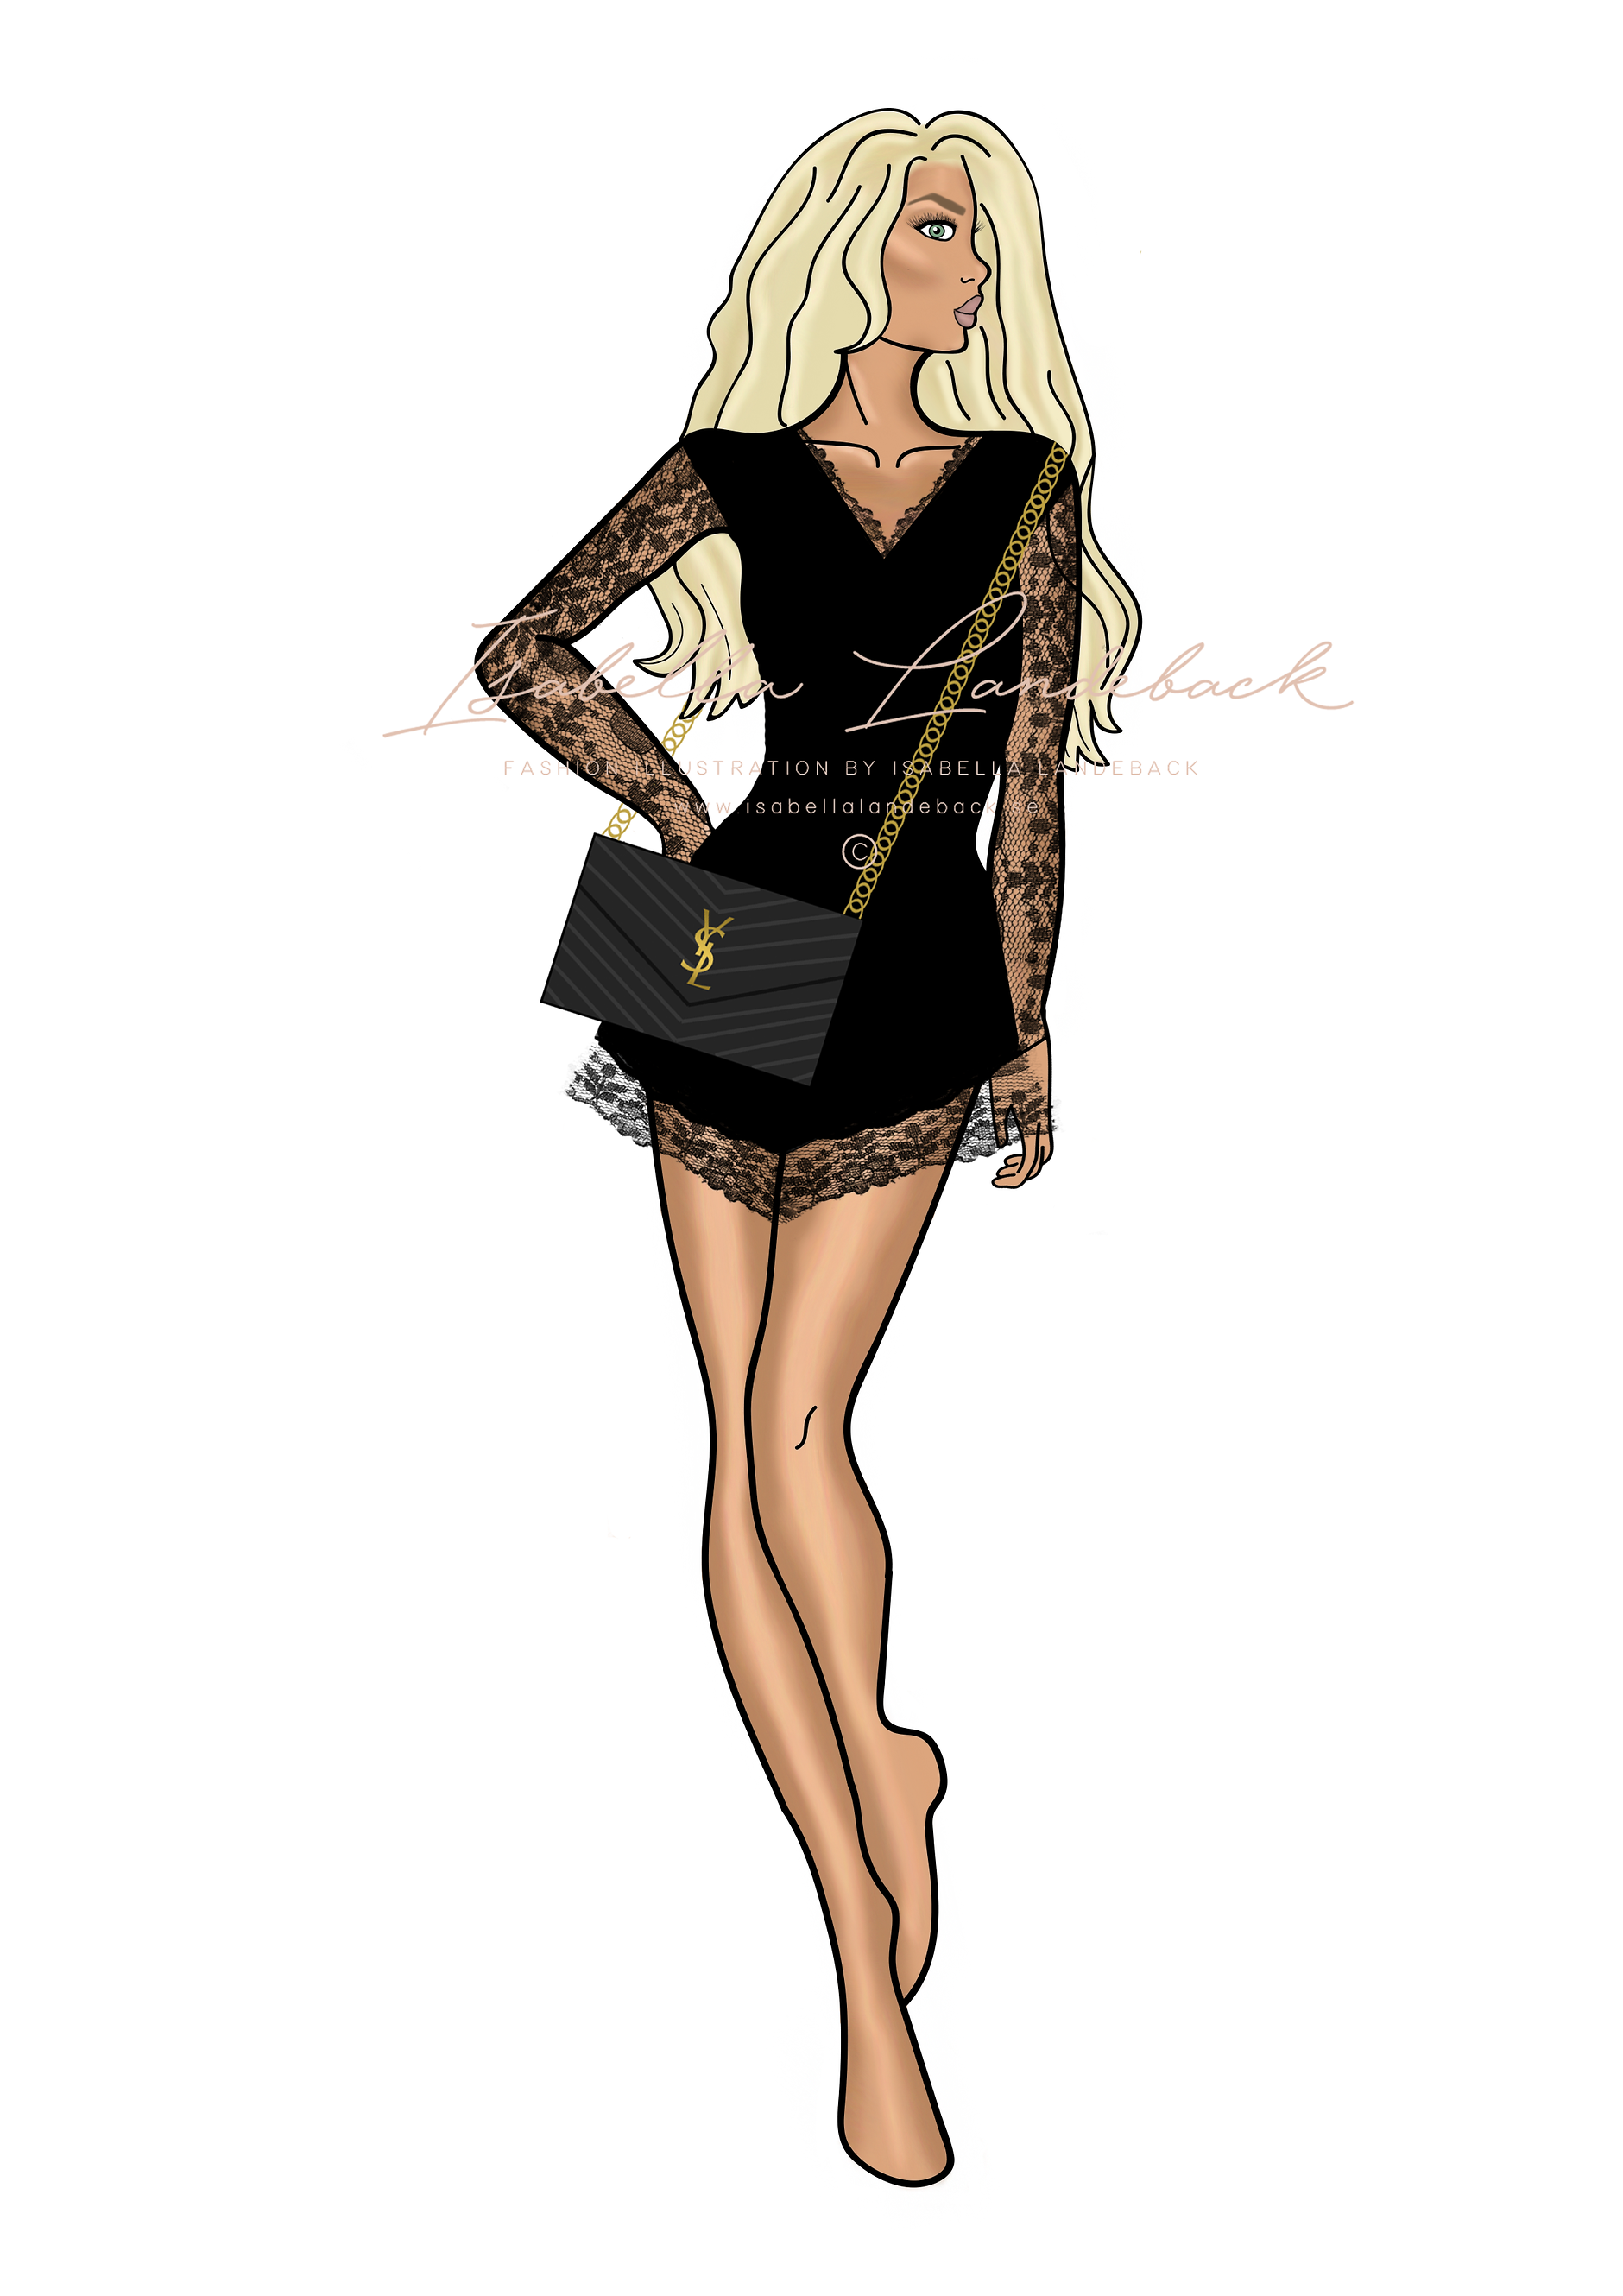 Two bloggers - fashion illustrations